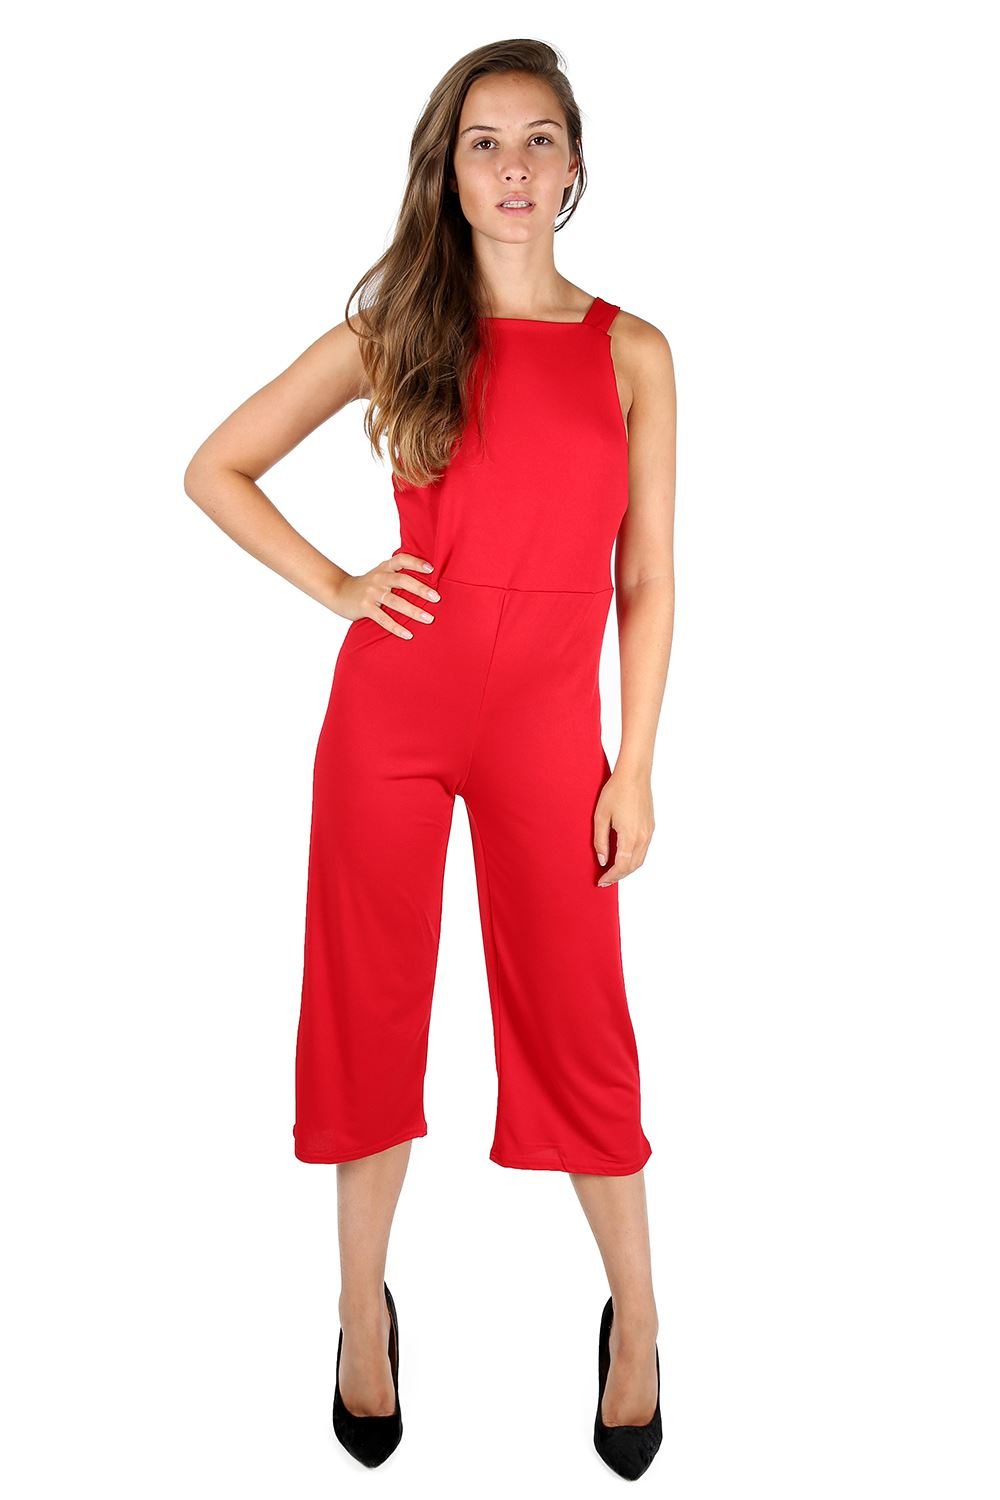 f767765ef9a Womens Ladies 3 4 Length All In One Dungaree Wide Leg Palazzo ...